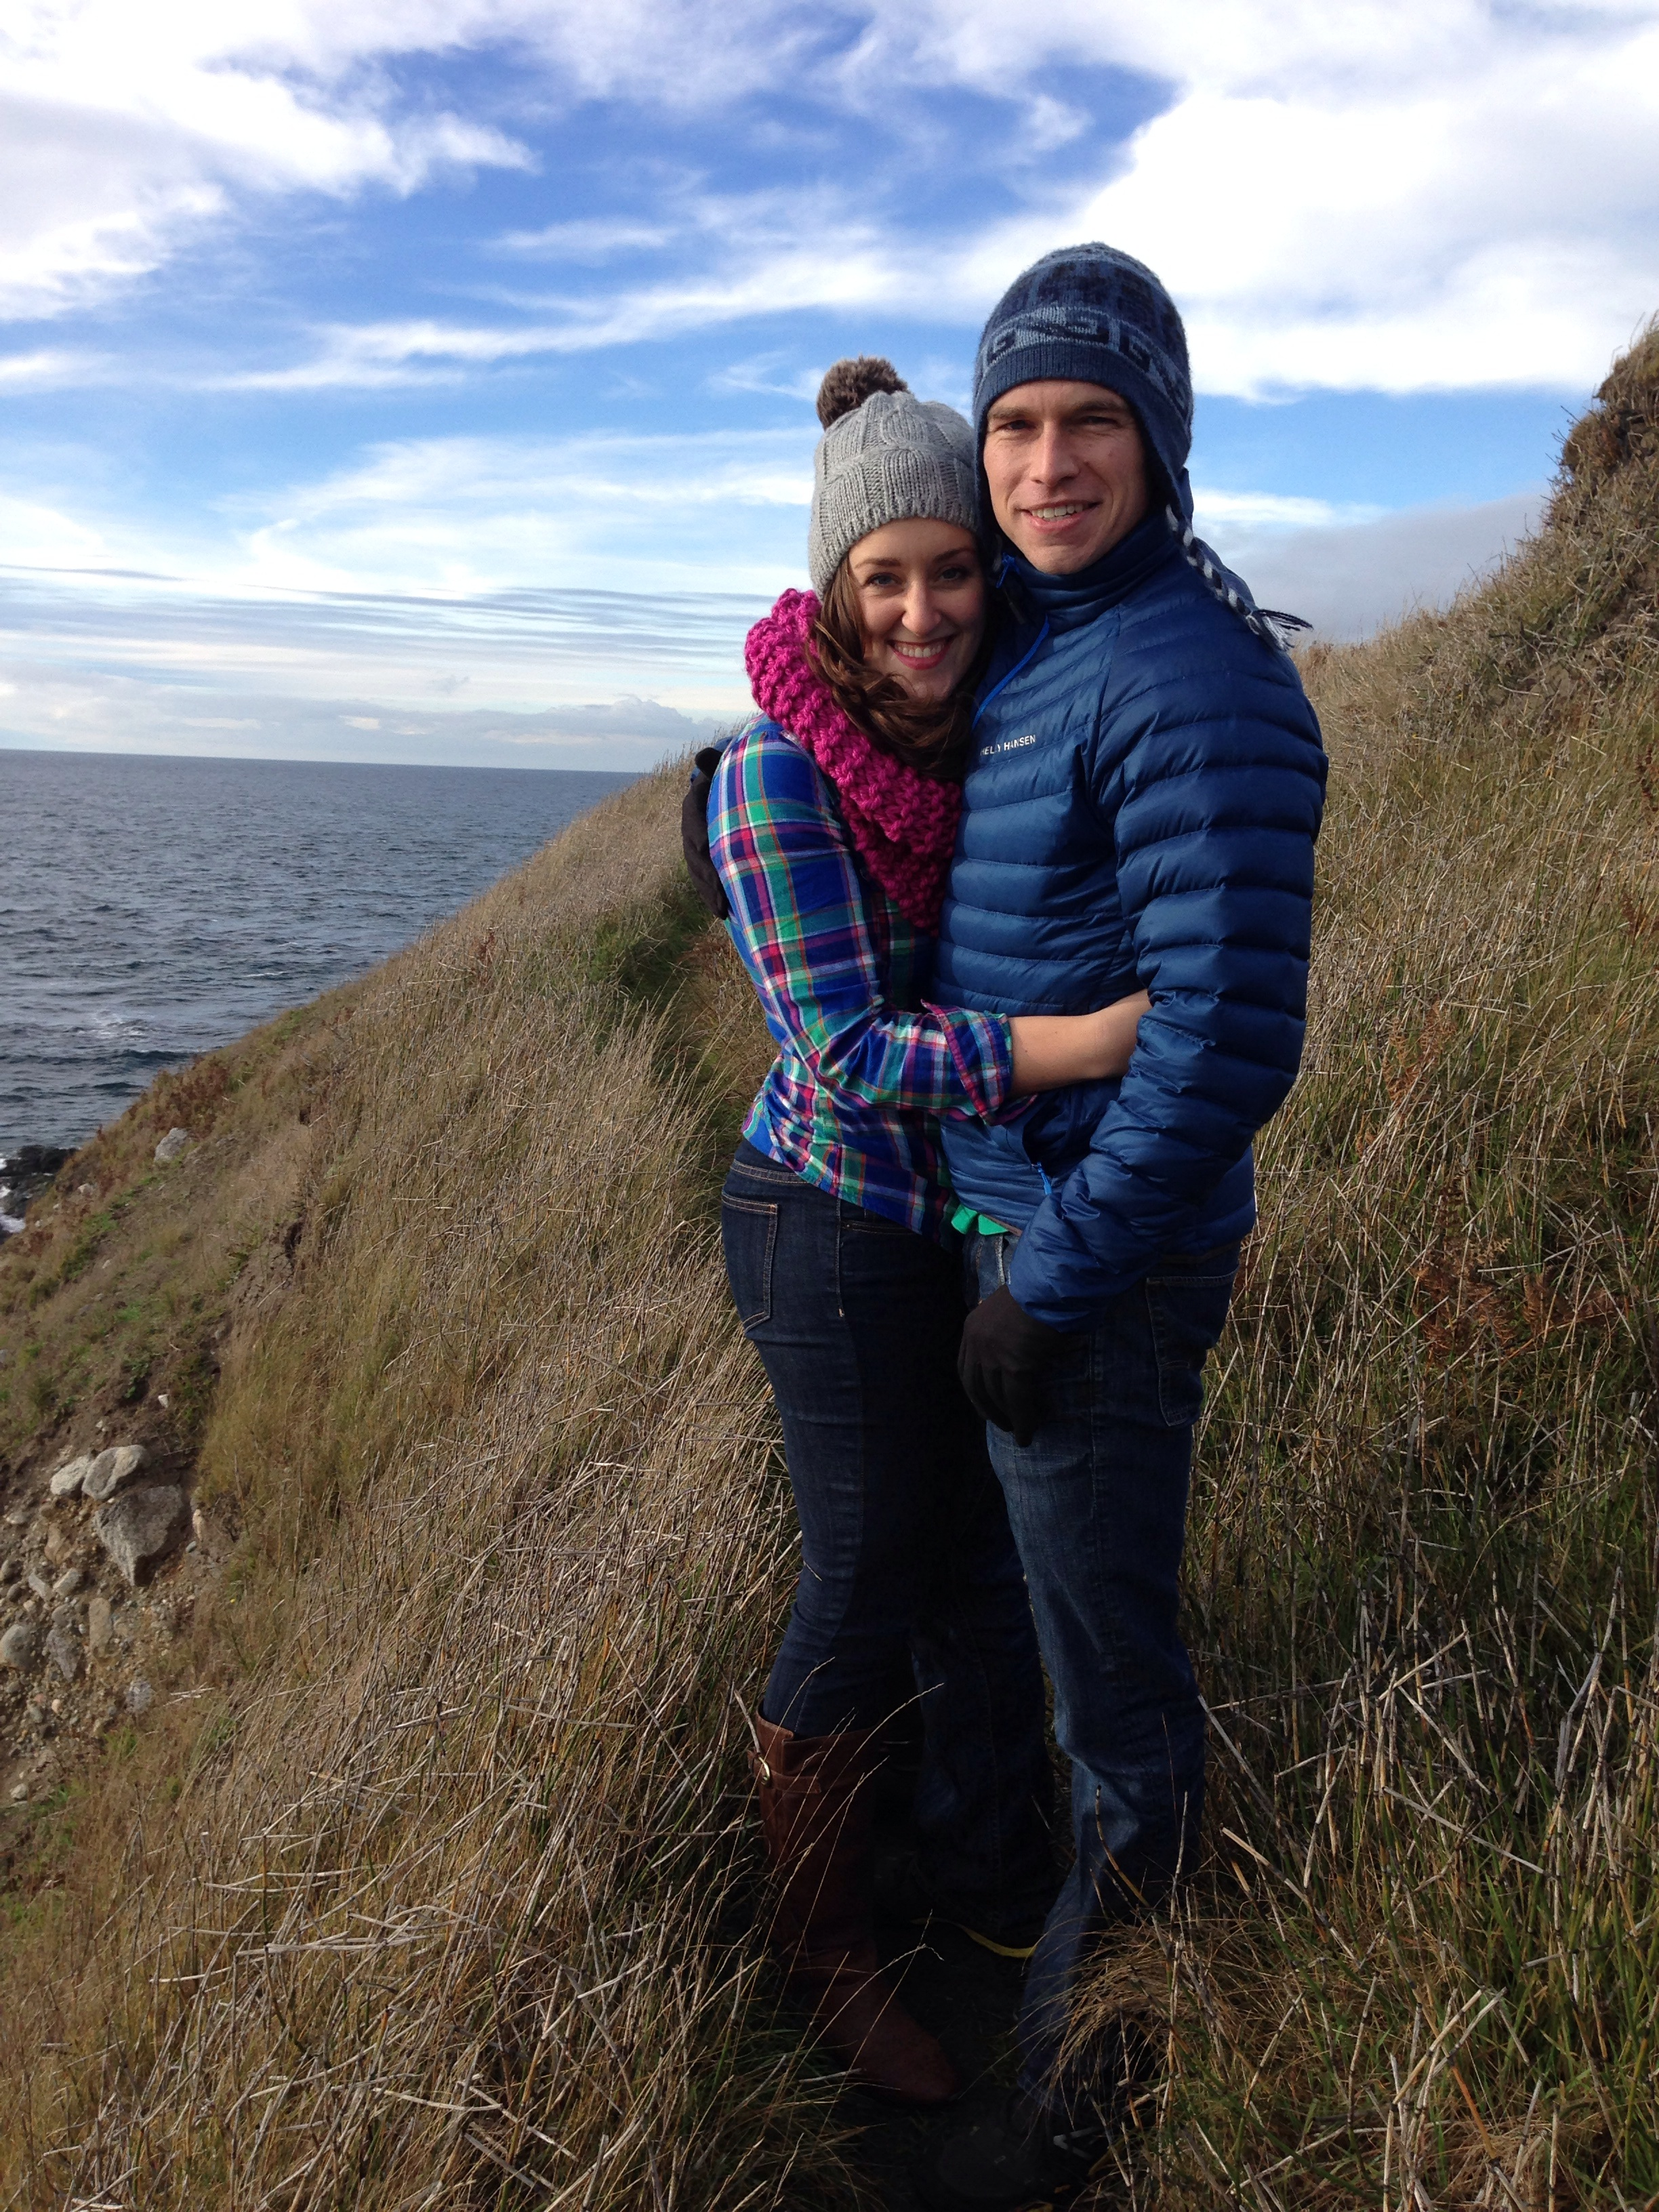 We took baby announcement photos here the day after Thanksgiving. This was the spot where Dave proposed to me in 2011.